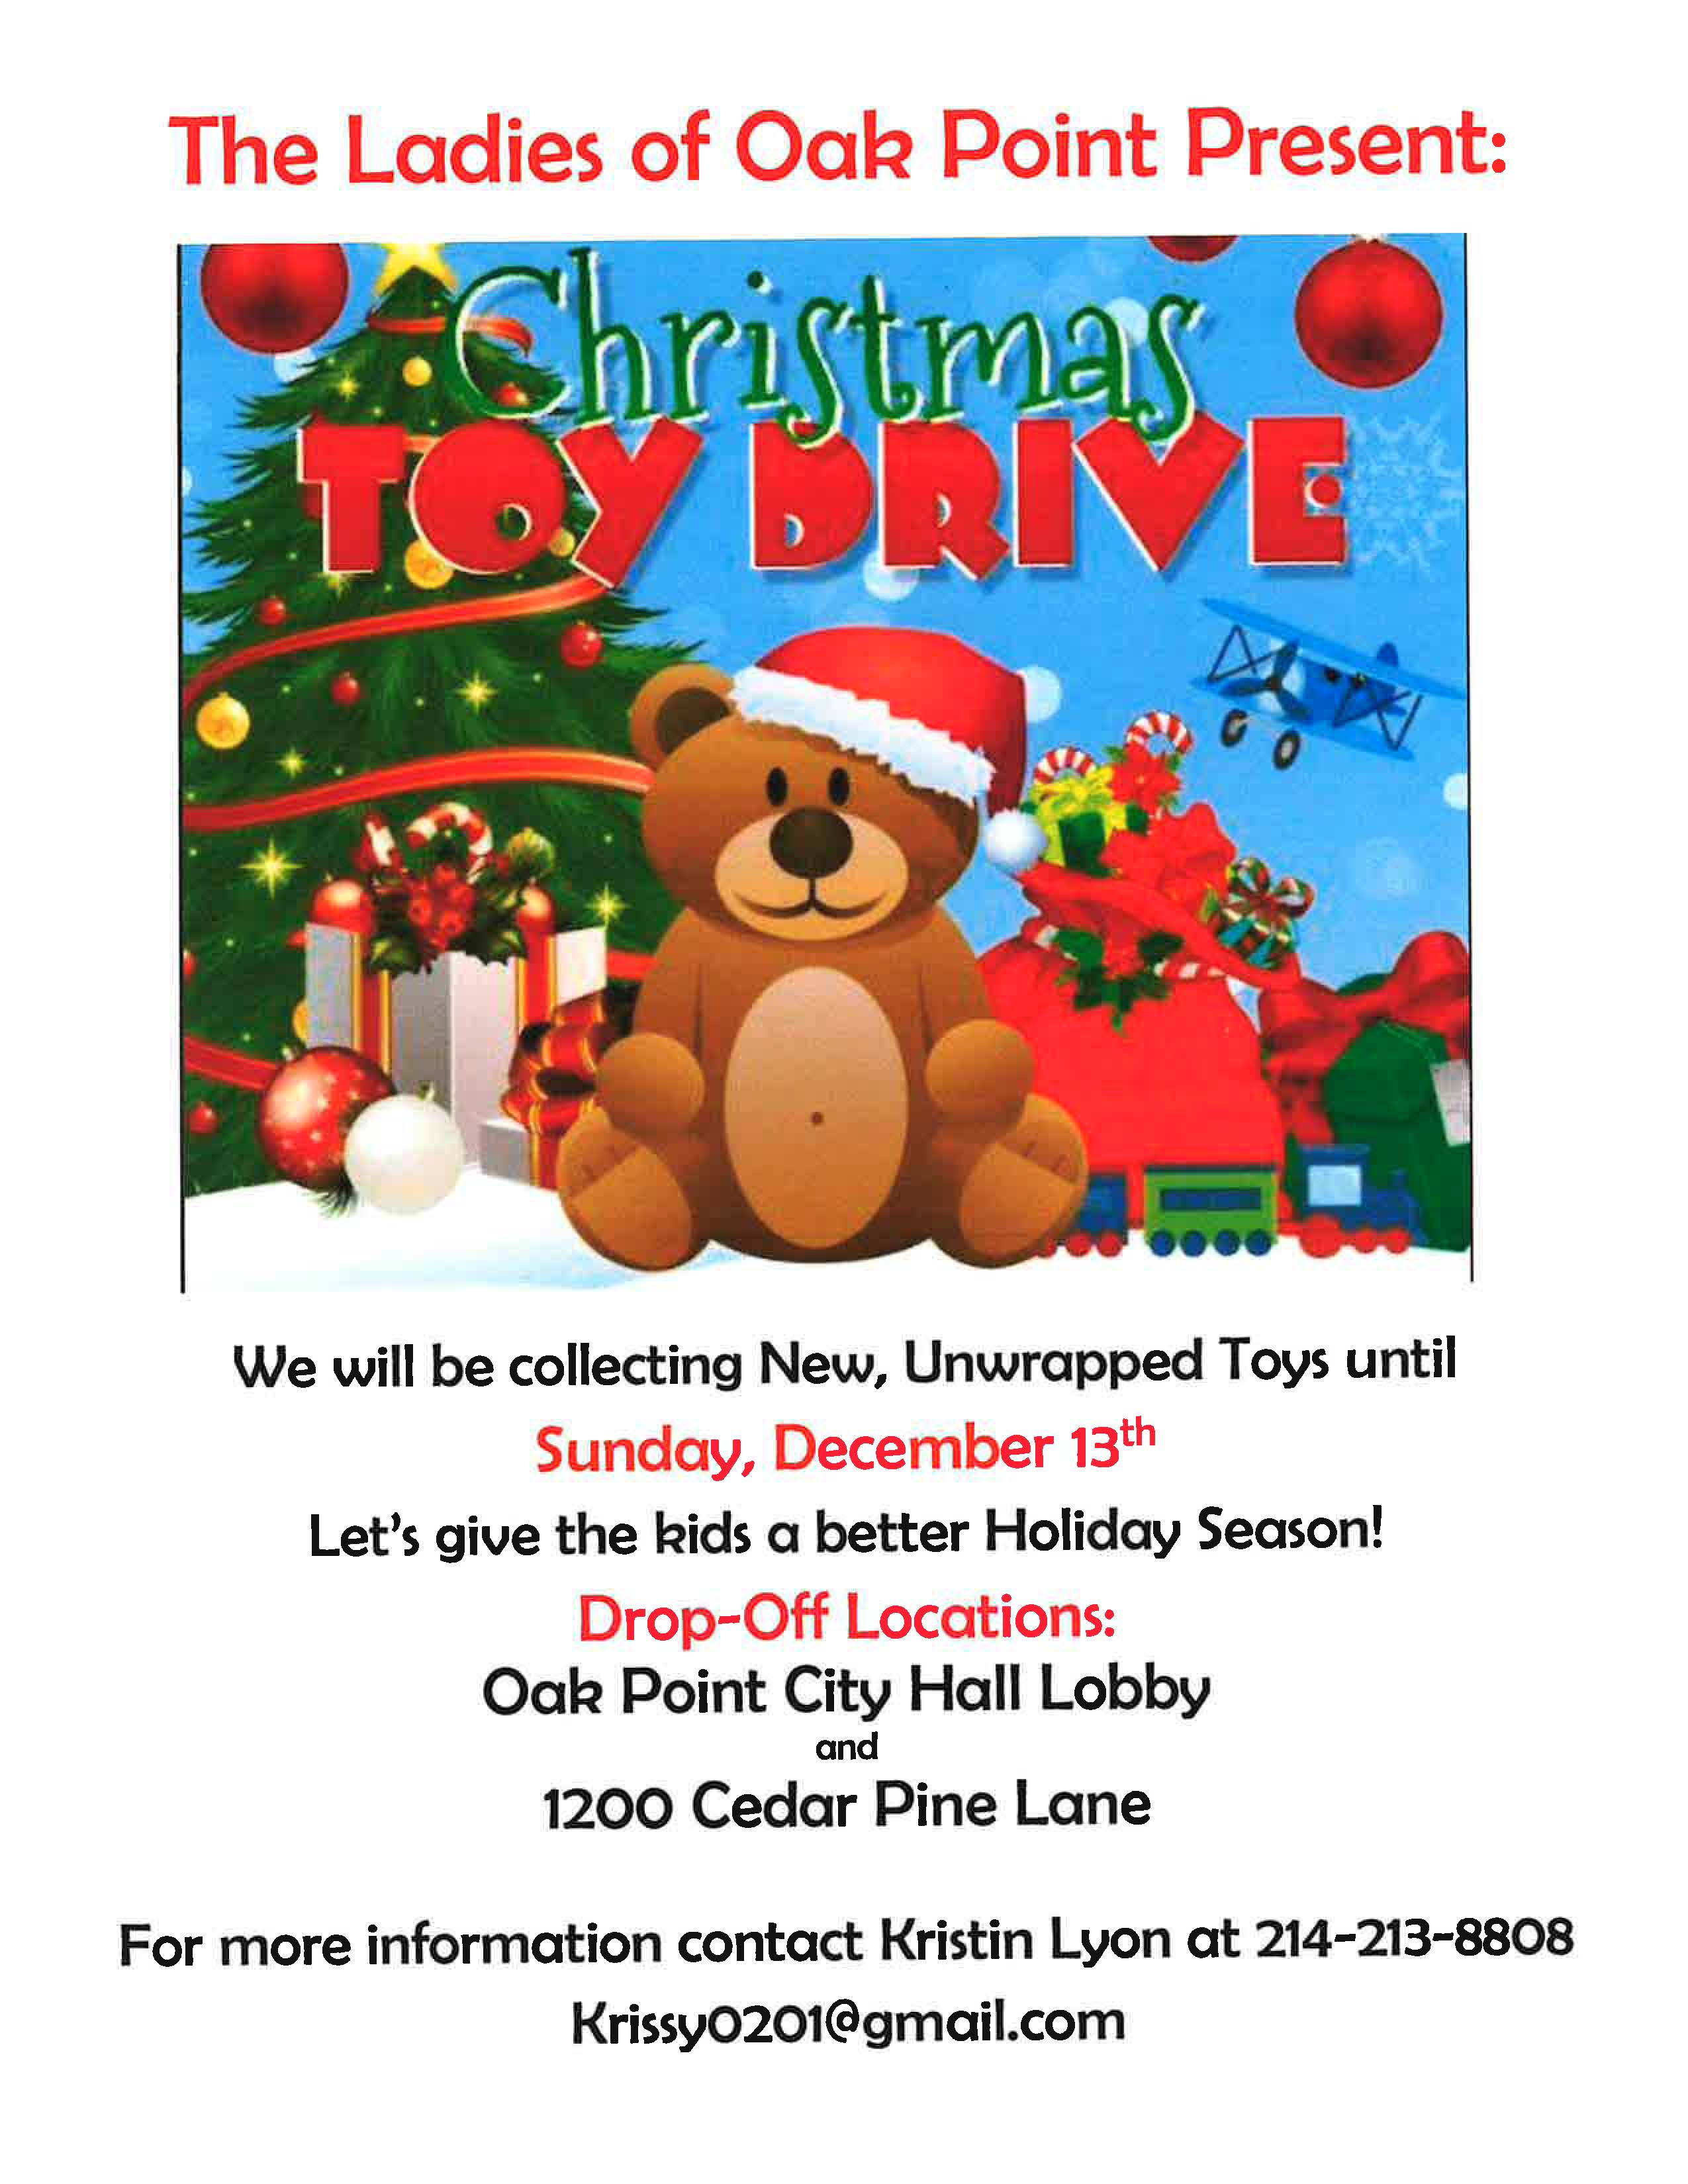 Ladies of Oak Point Toy Drive